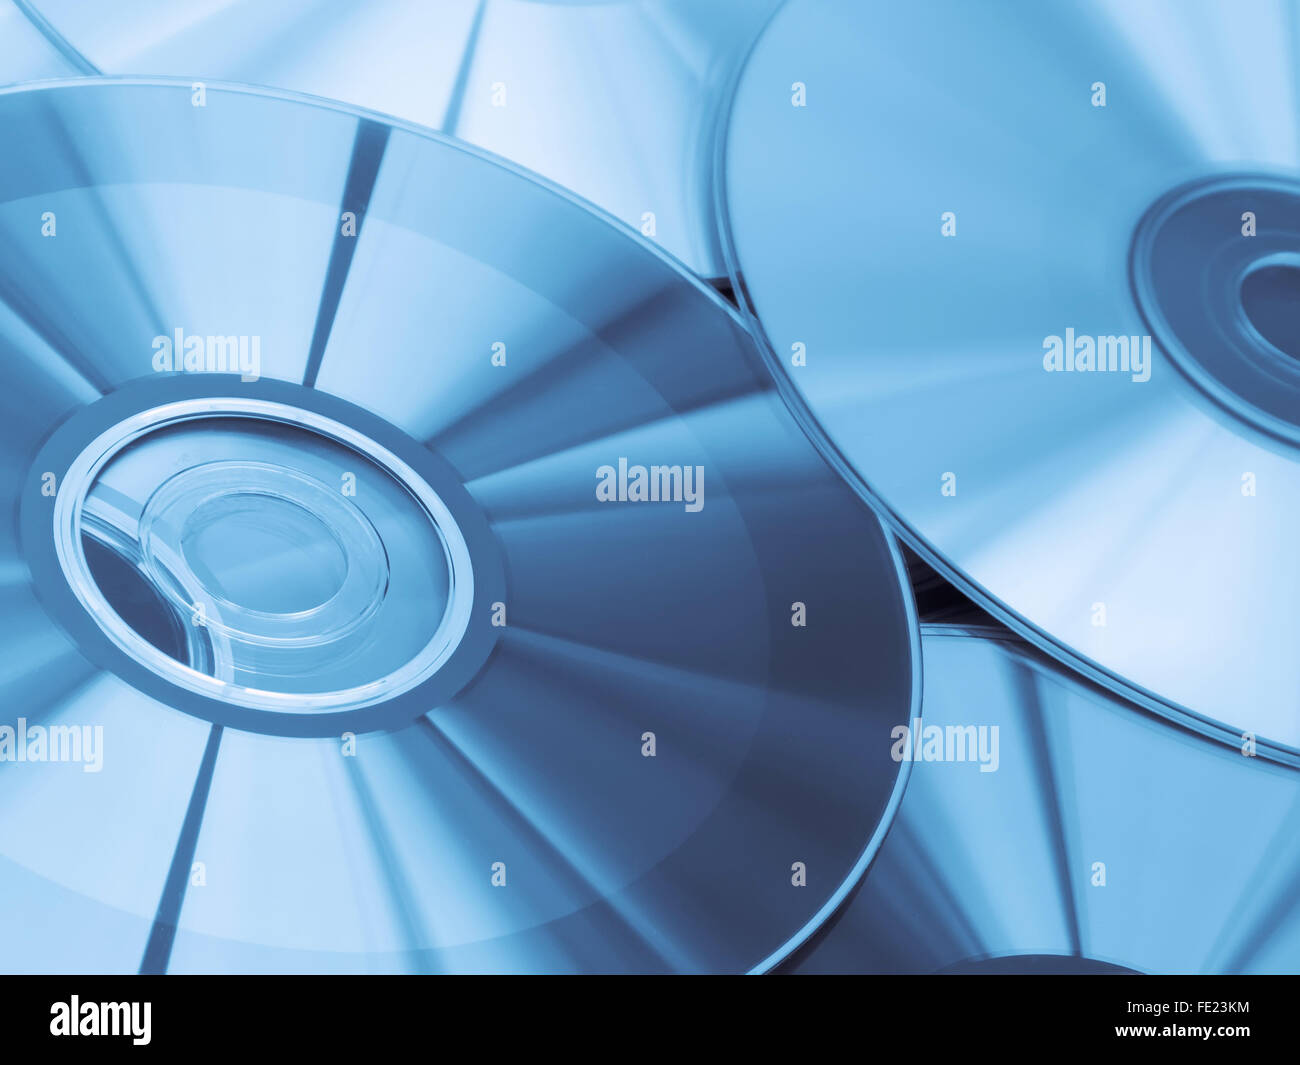 Compact Discs with Blue Toning - Stock Image